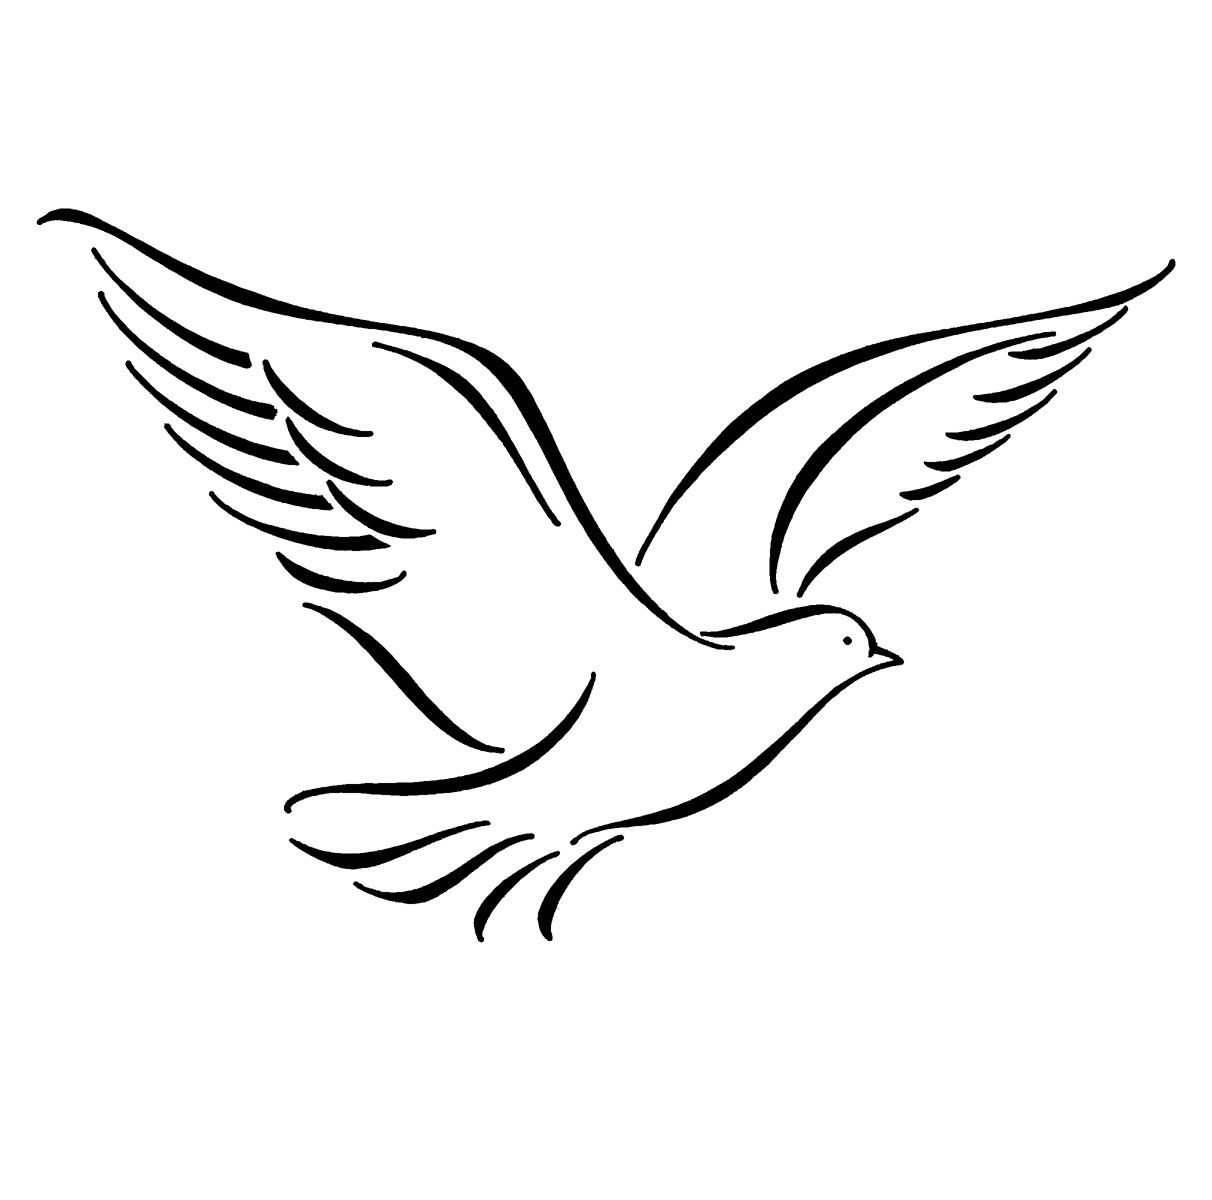 Free Flying Bird Drawing, Download Free Clip Art, Free